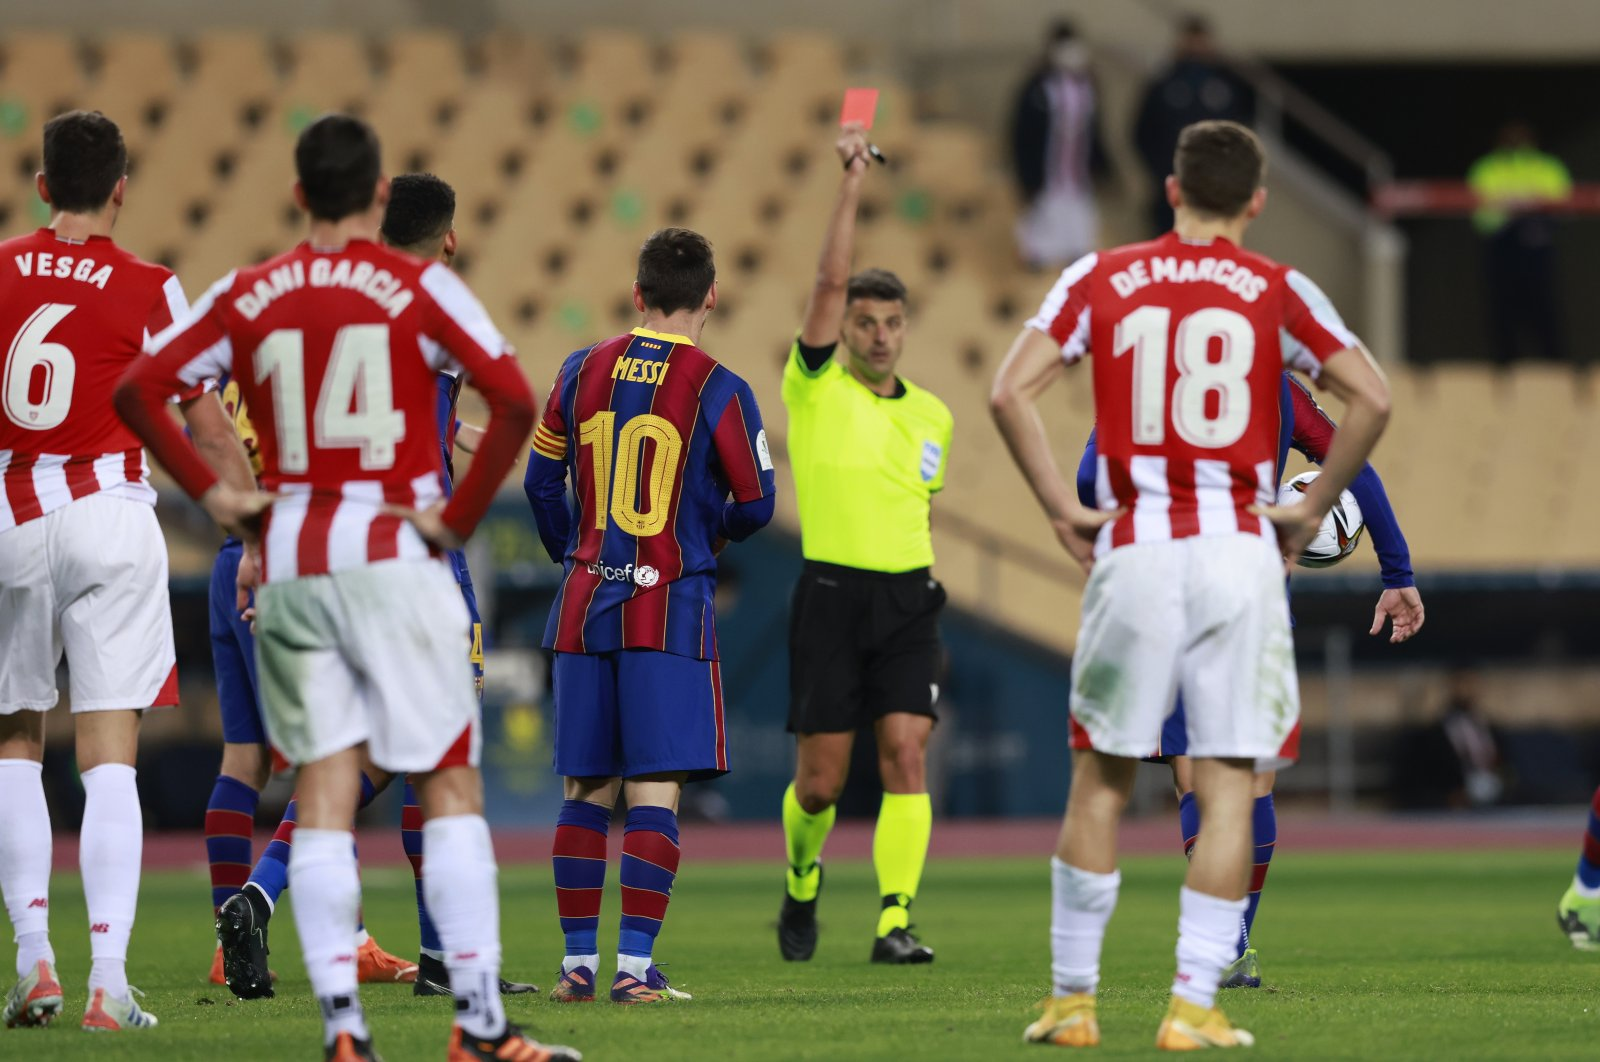 Lionel Messi is shown the first red card in his Barcelona career during the Spanish Super Cup Final between Barcelona and Athletic Bilbao, Estadio La Cartuja de Sevilla, Seville, Spain, Jan. 17, 2021. (Reuters Photo)